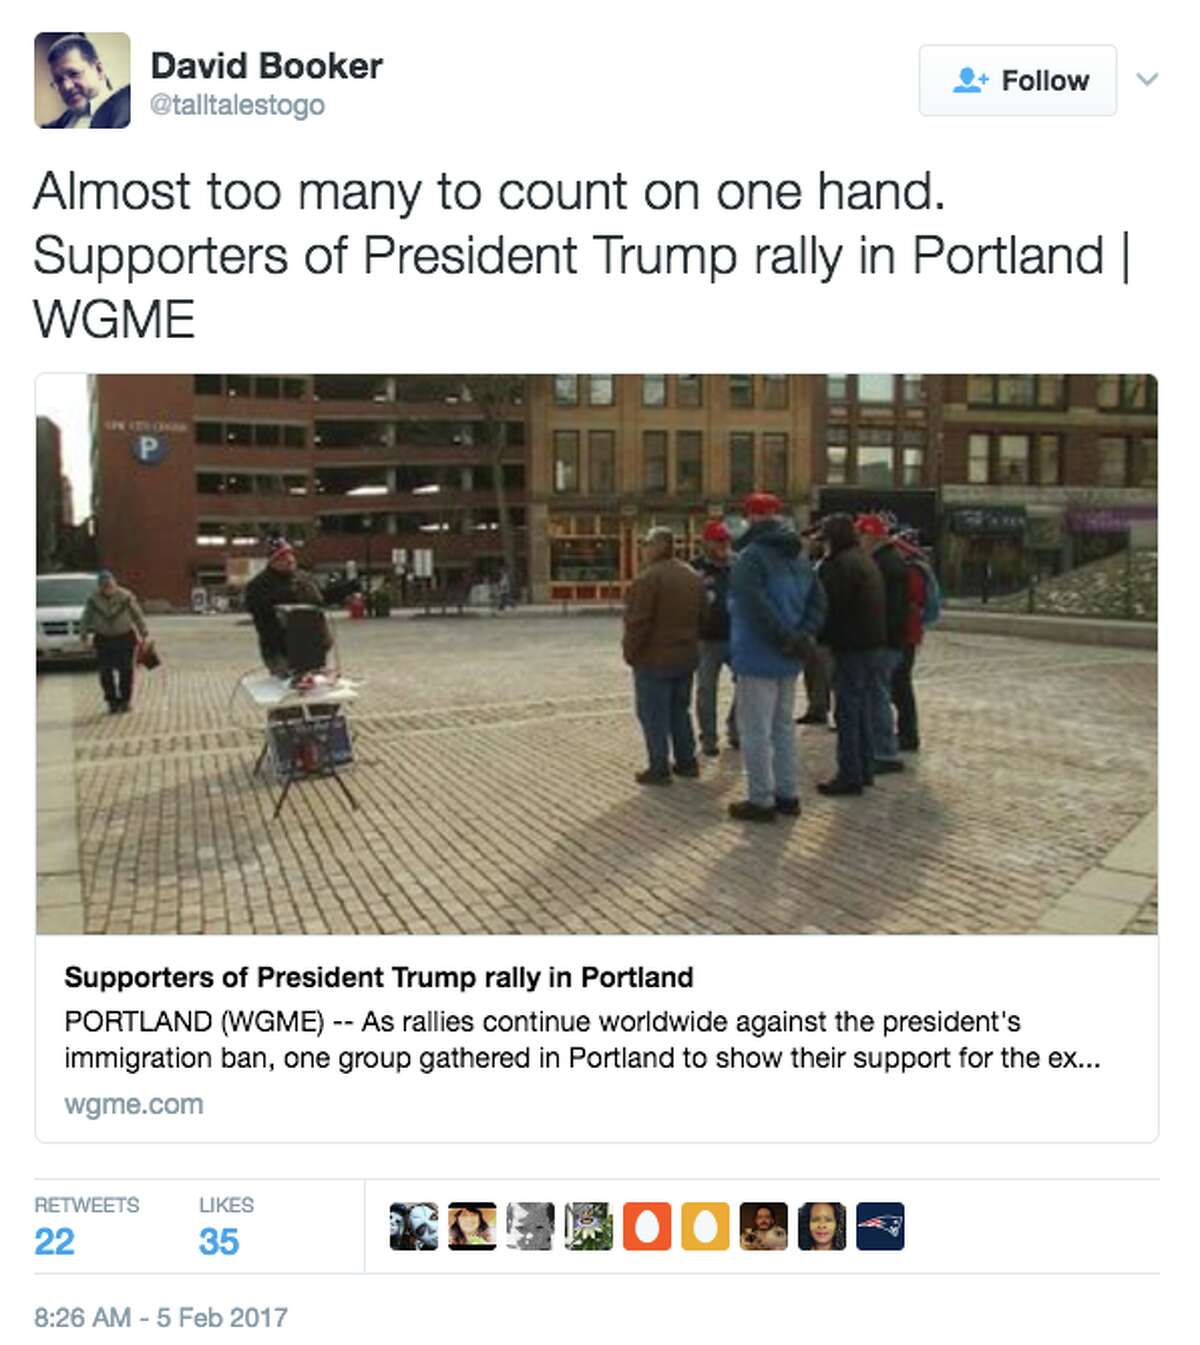 Twitter reacts to WGME-TV's coverage of Trump rally in Portland, Maine on Feb. 4, 2017. (@talltalestogo)